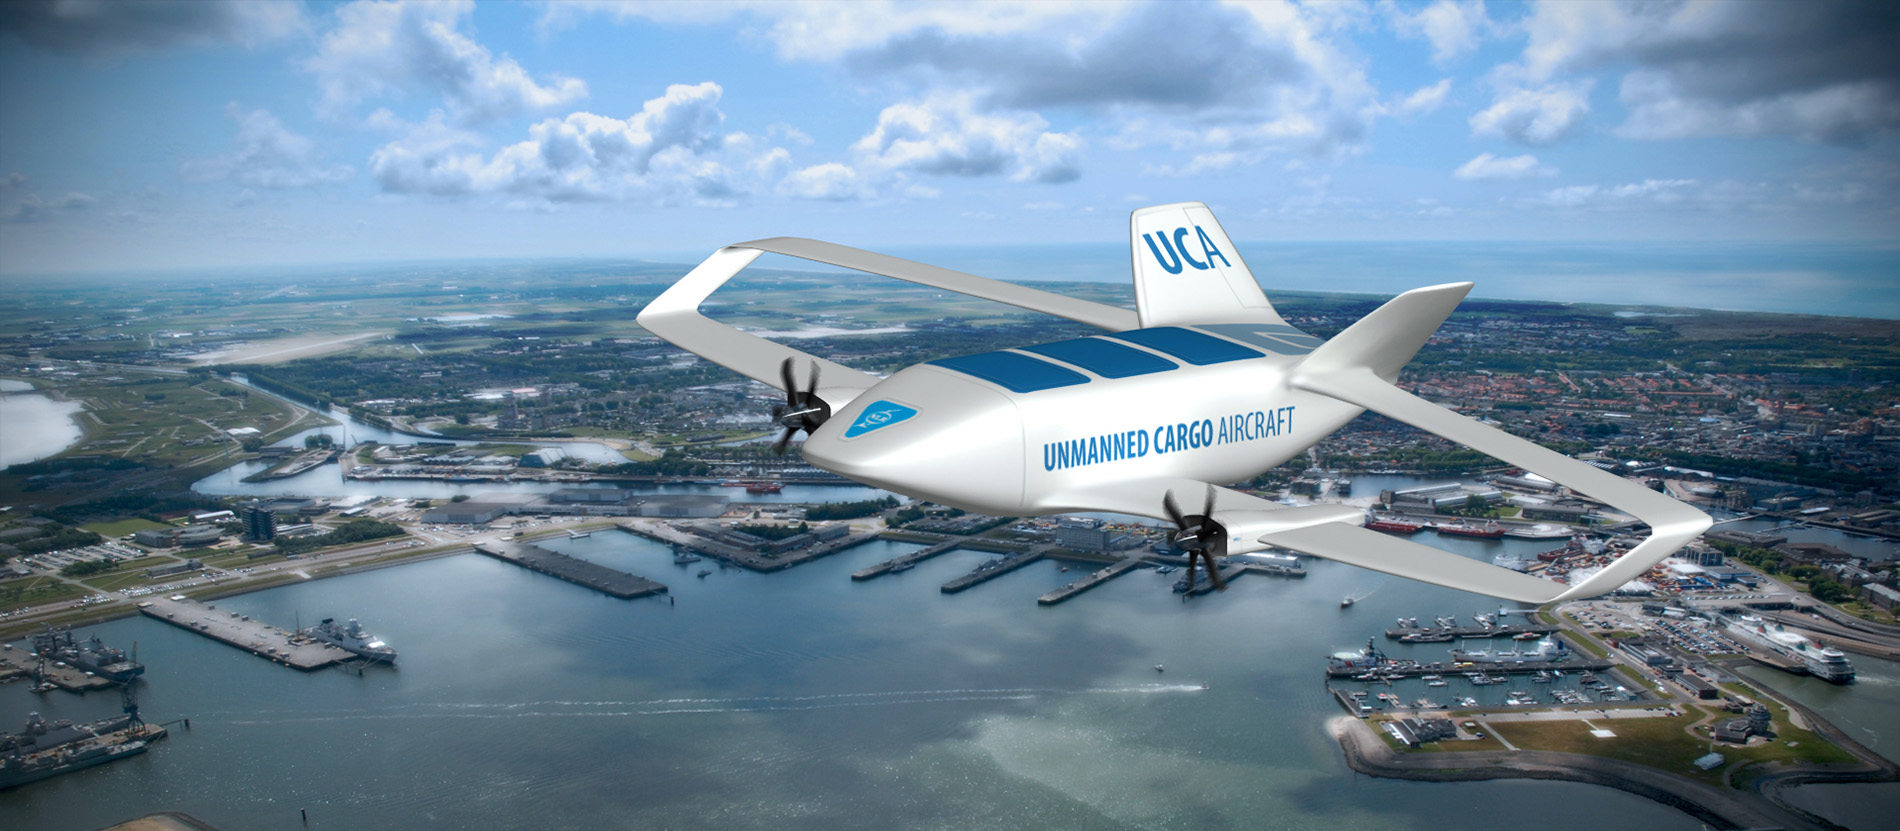 Unmanned Cargo Aircraft